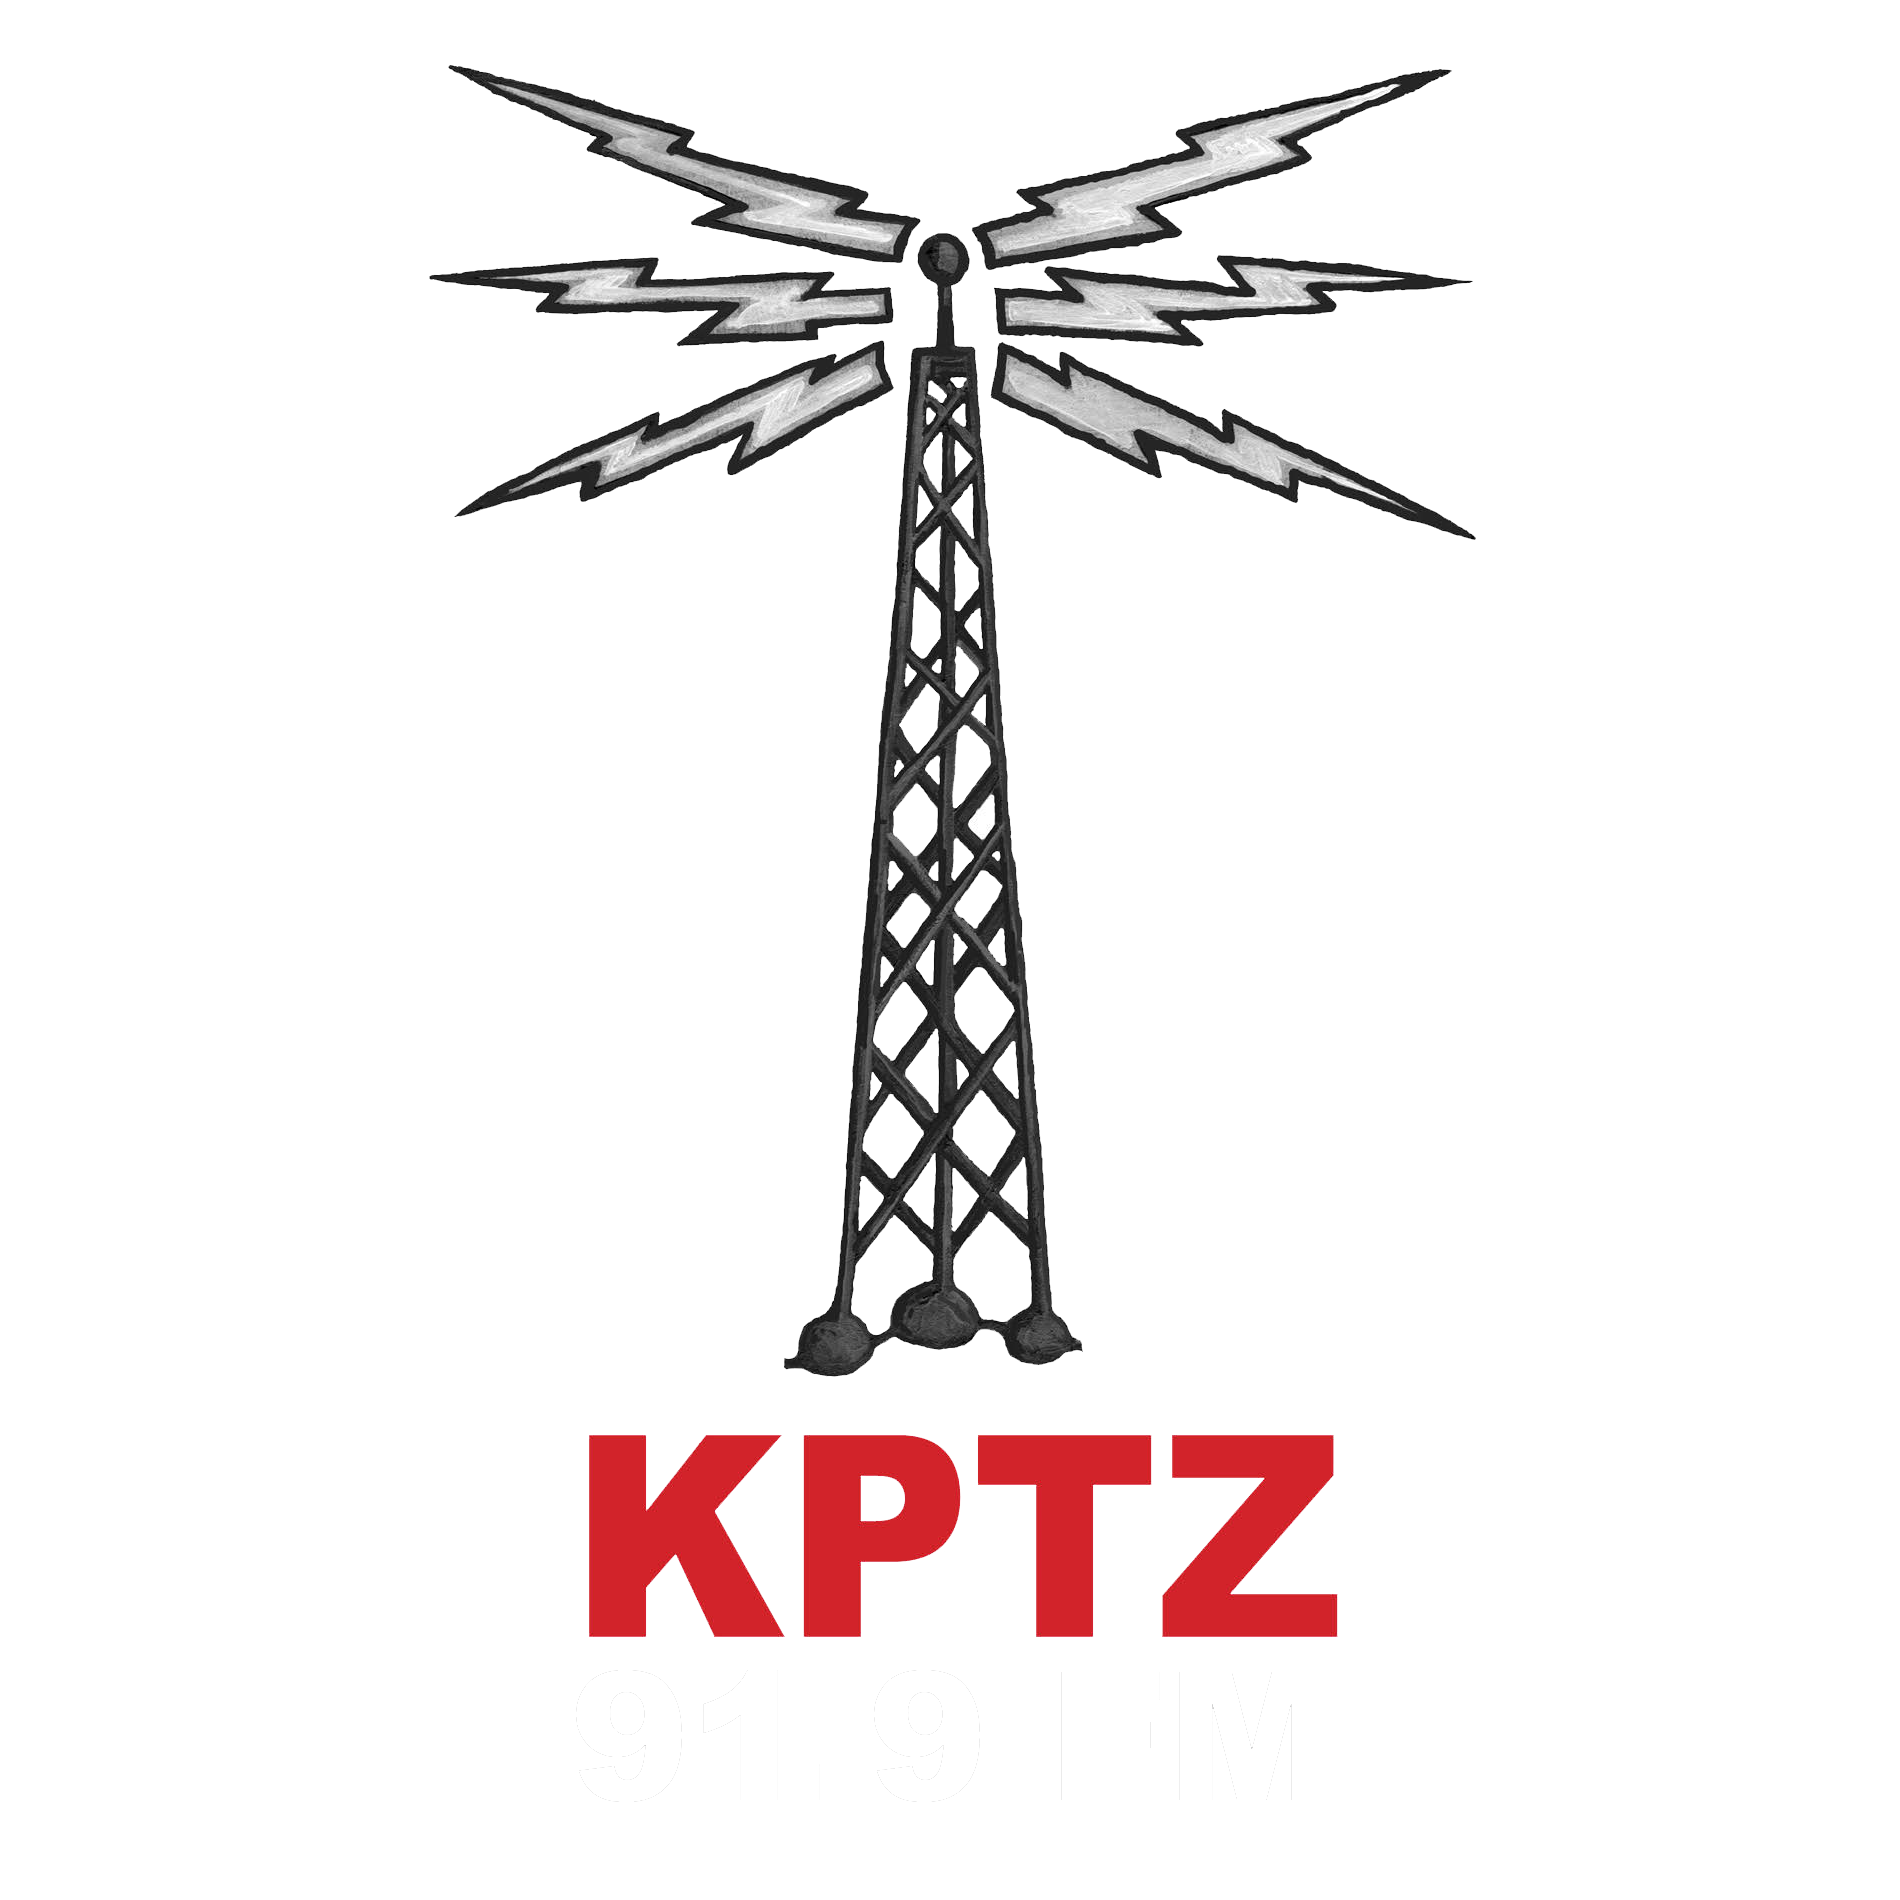 kptz tower logo.png